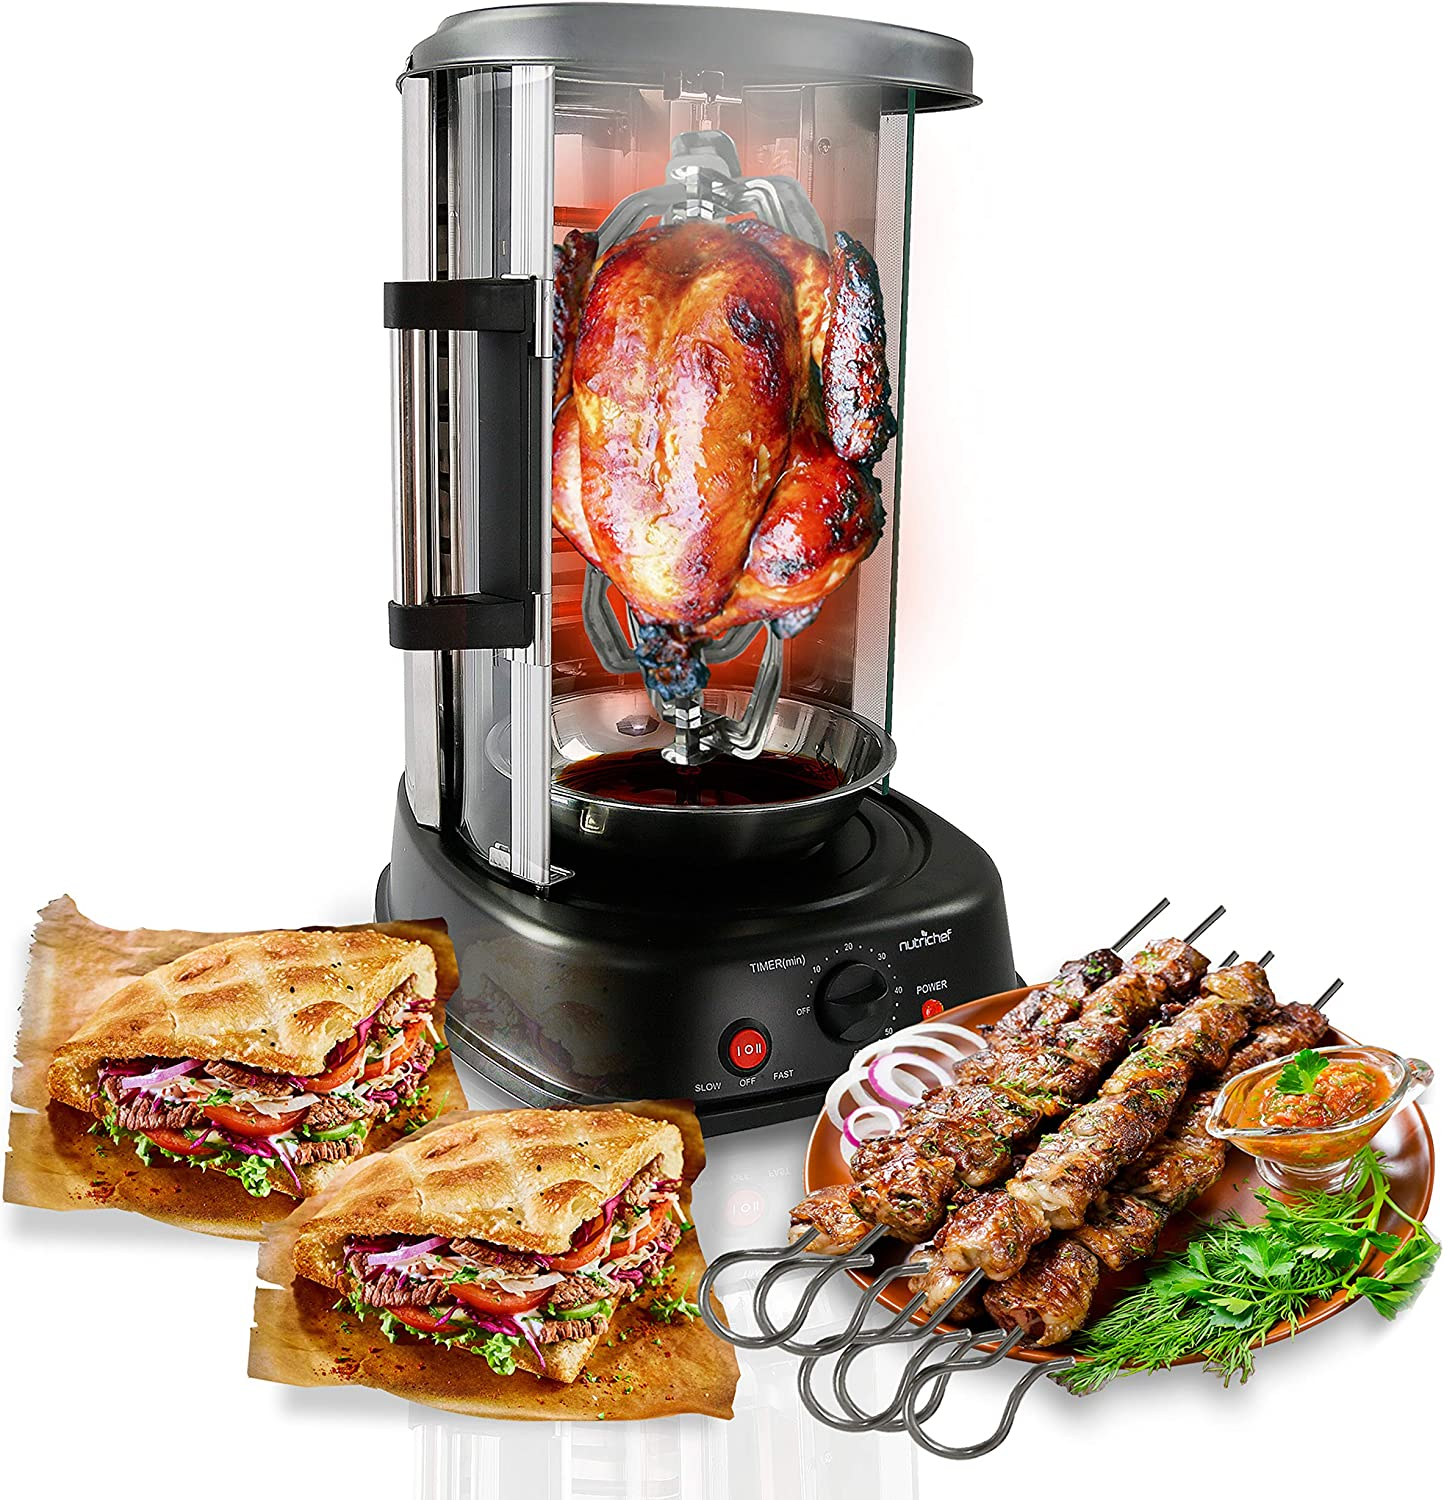 NutriChef Countertop Vertical Rotating Oven - Rotisserie Shawarma Machine, Kebob Machine, Stain Resistant & Energy Efficient W/ Heat Resistant Door,Includes Kebob Rack with 7 Skewers (PKRTVG34)